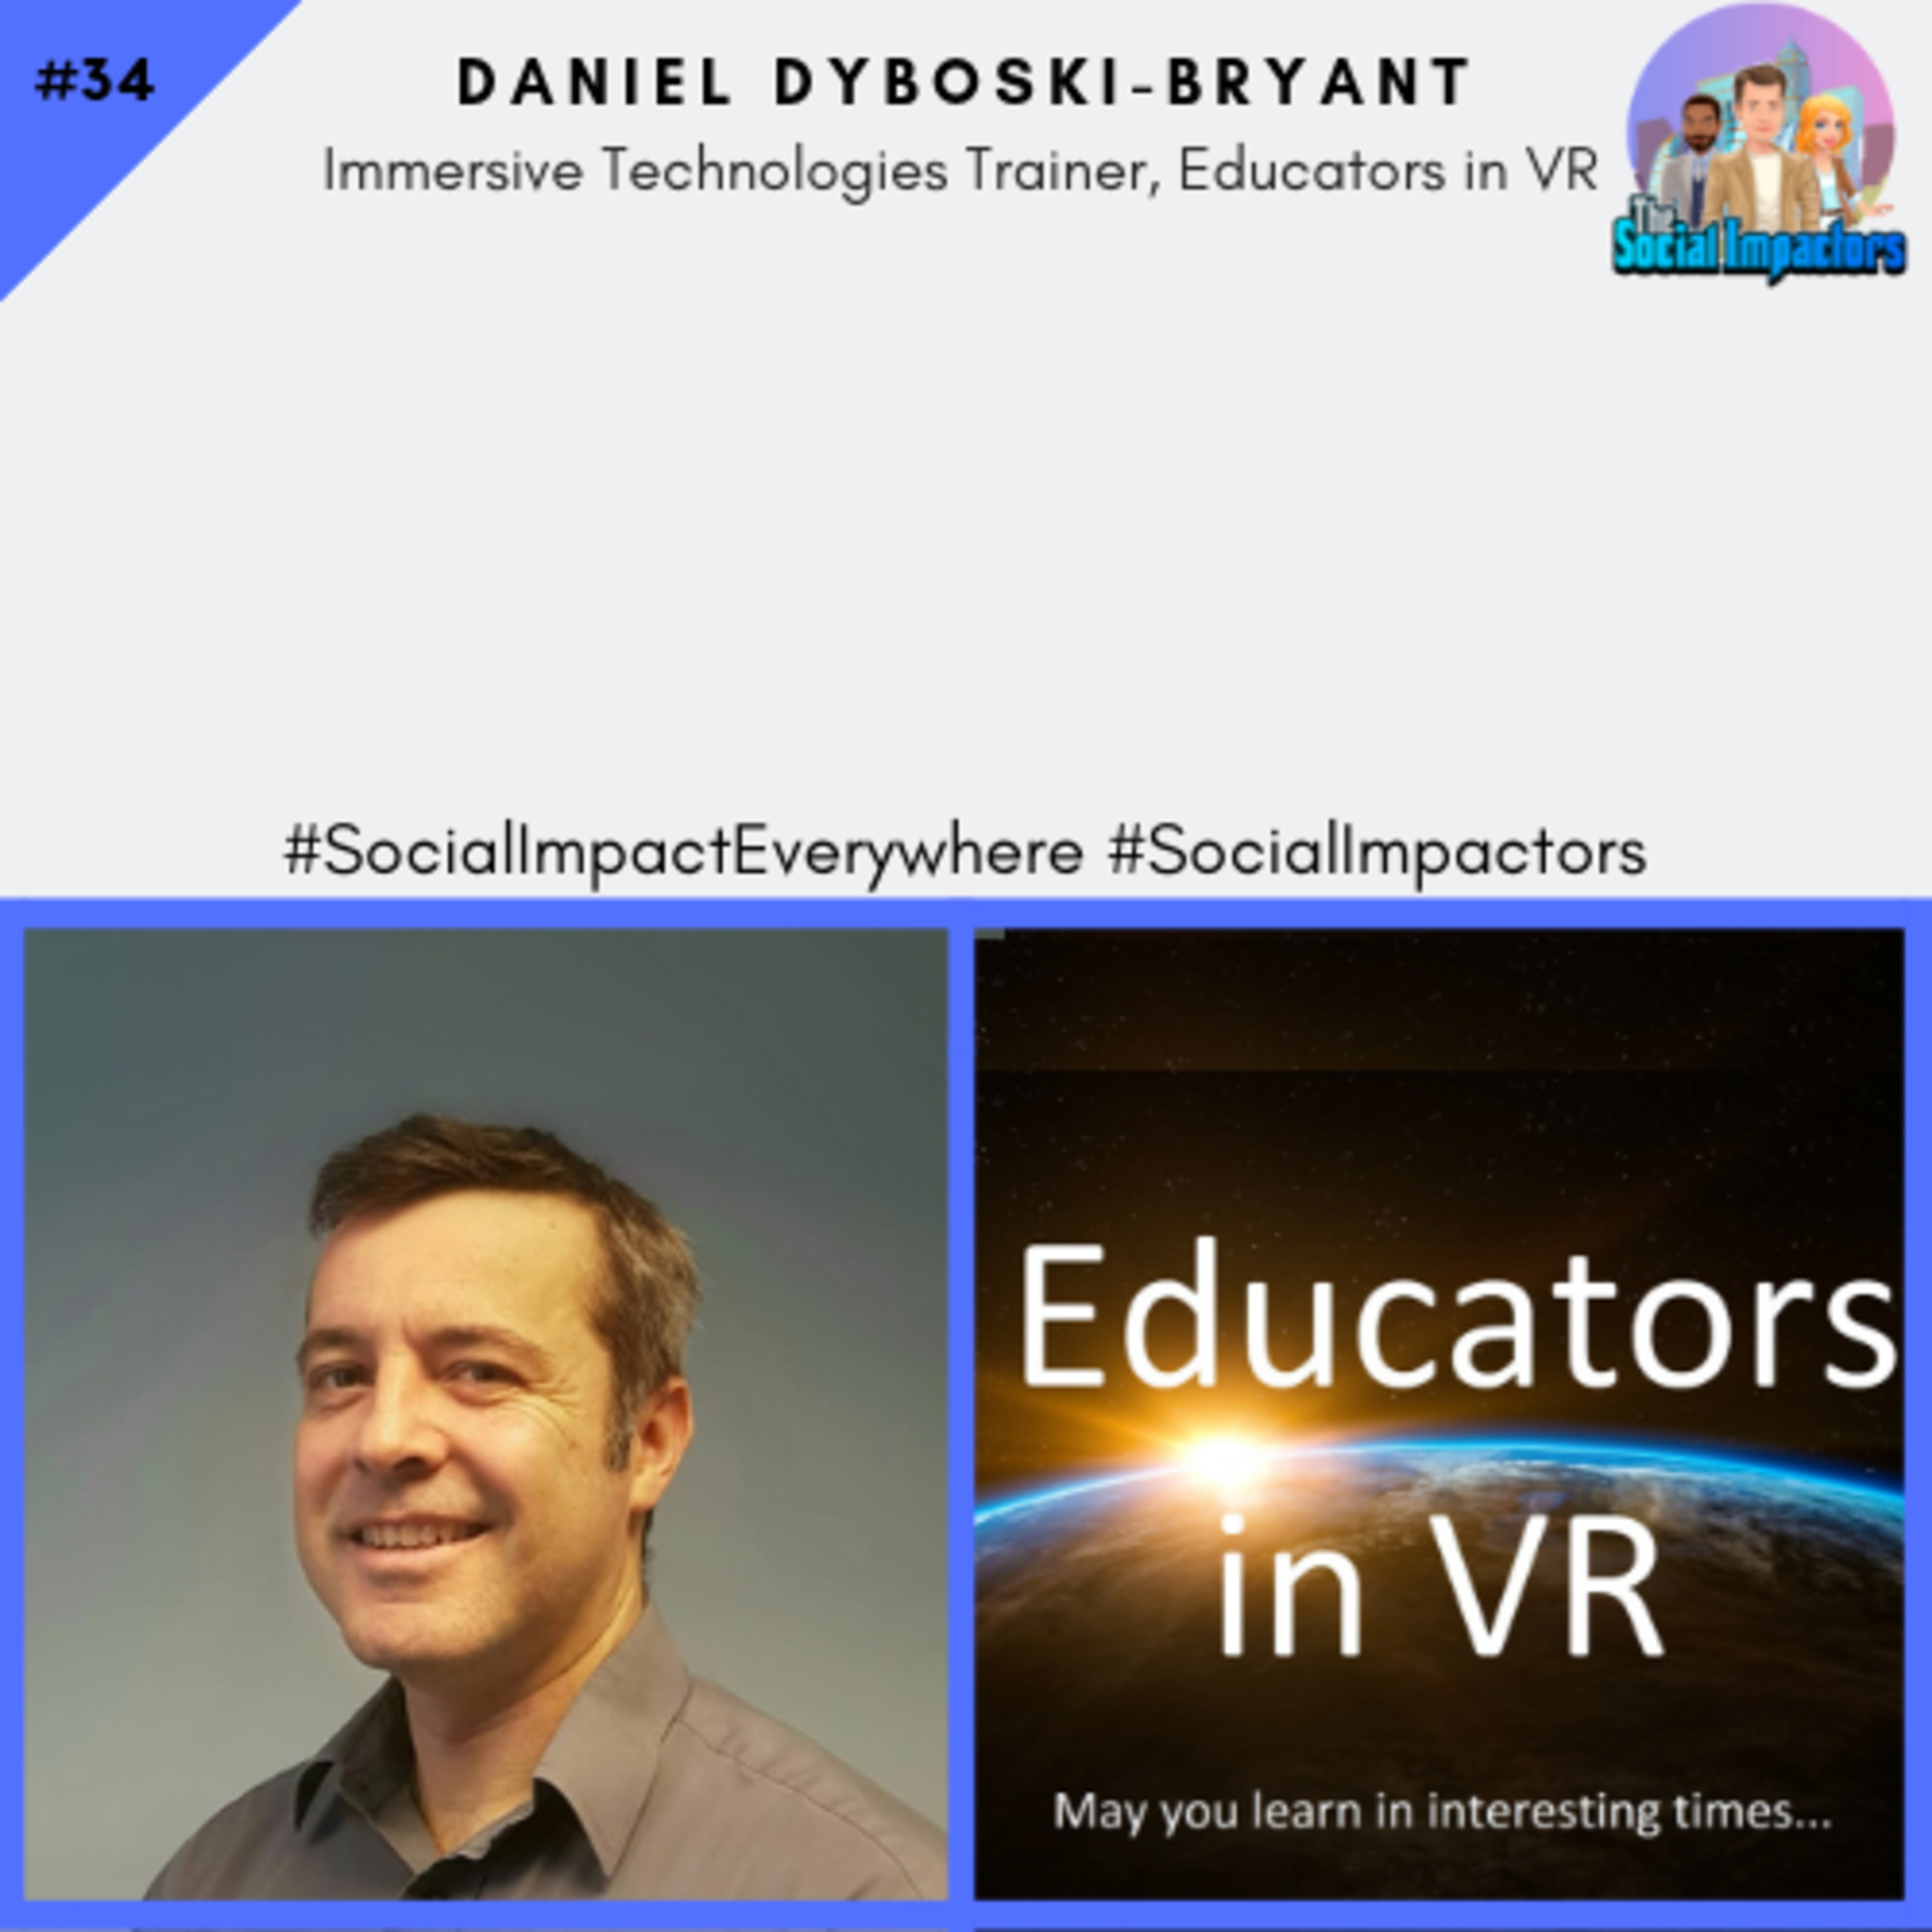 Social impact as a moral imperative, the effect of large business & education as a catalyst (Daniel Dyboski-Bryant)